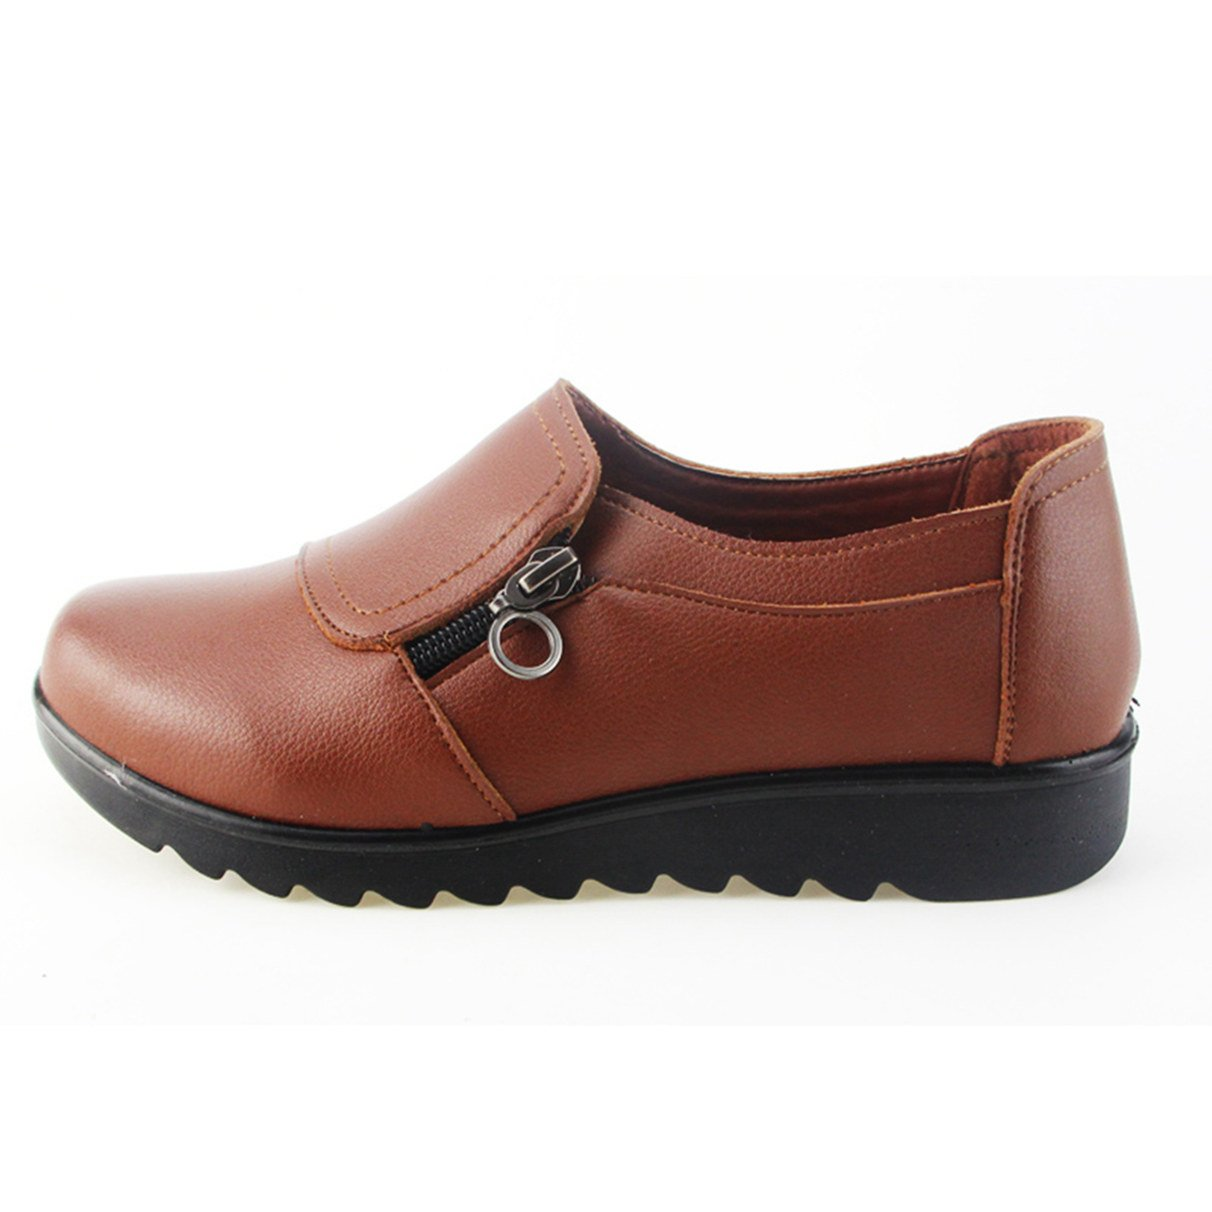 Women's Oxford Shoes, Fashion Casual Slip On Zipper Working Shoes